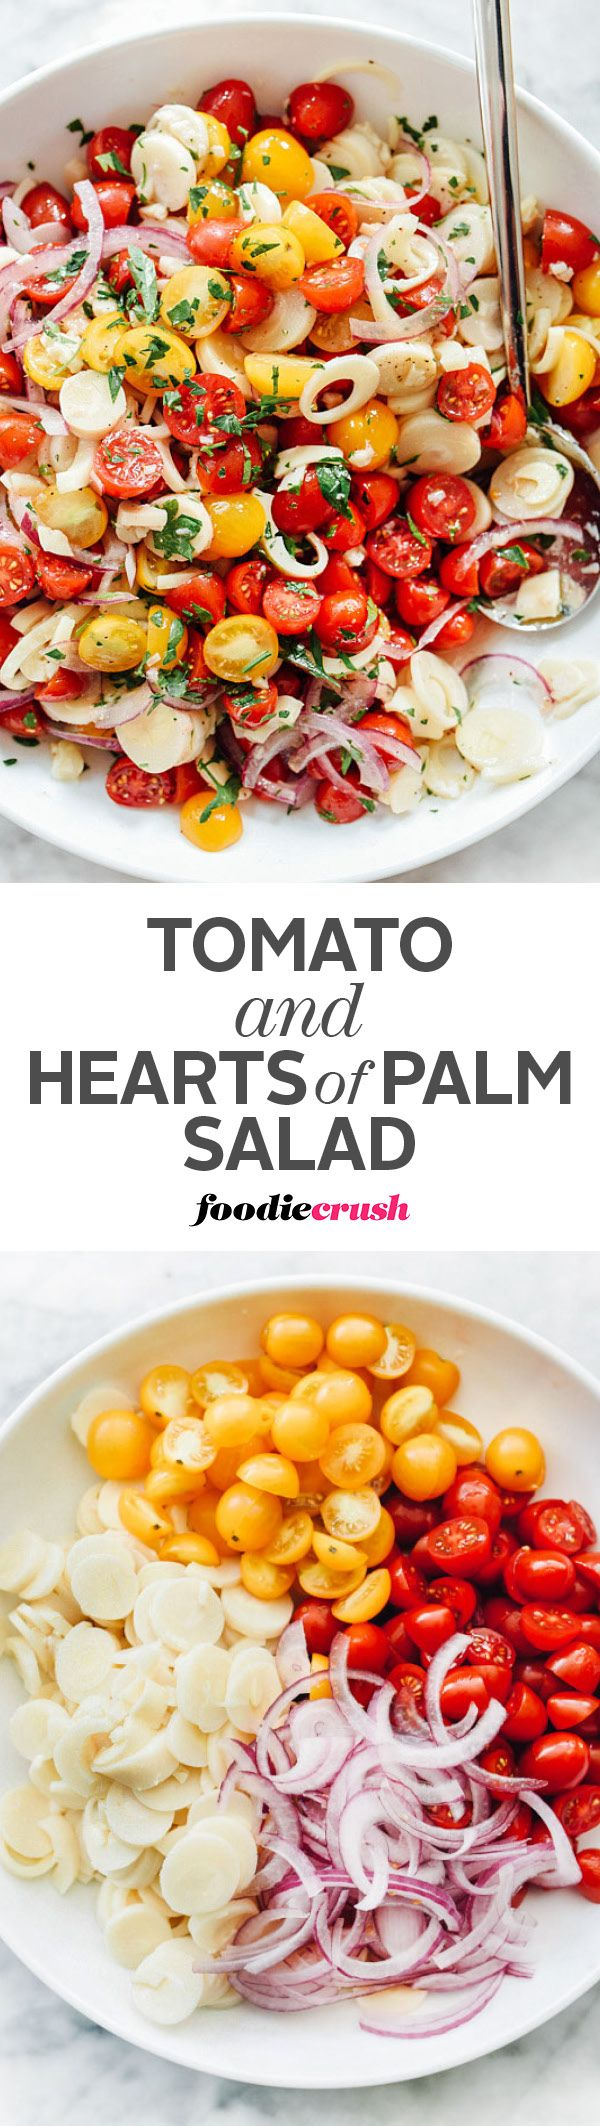 This tomato and hearts of palm salad takes just 10 minutes with a sharp knife for a little slicing and chopping to pull together and is the perfect addition to any potluck barbecue | http://foodiecrush.com